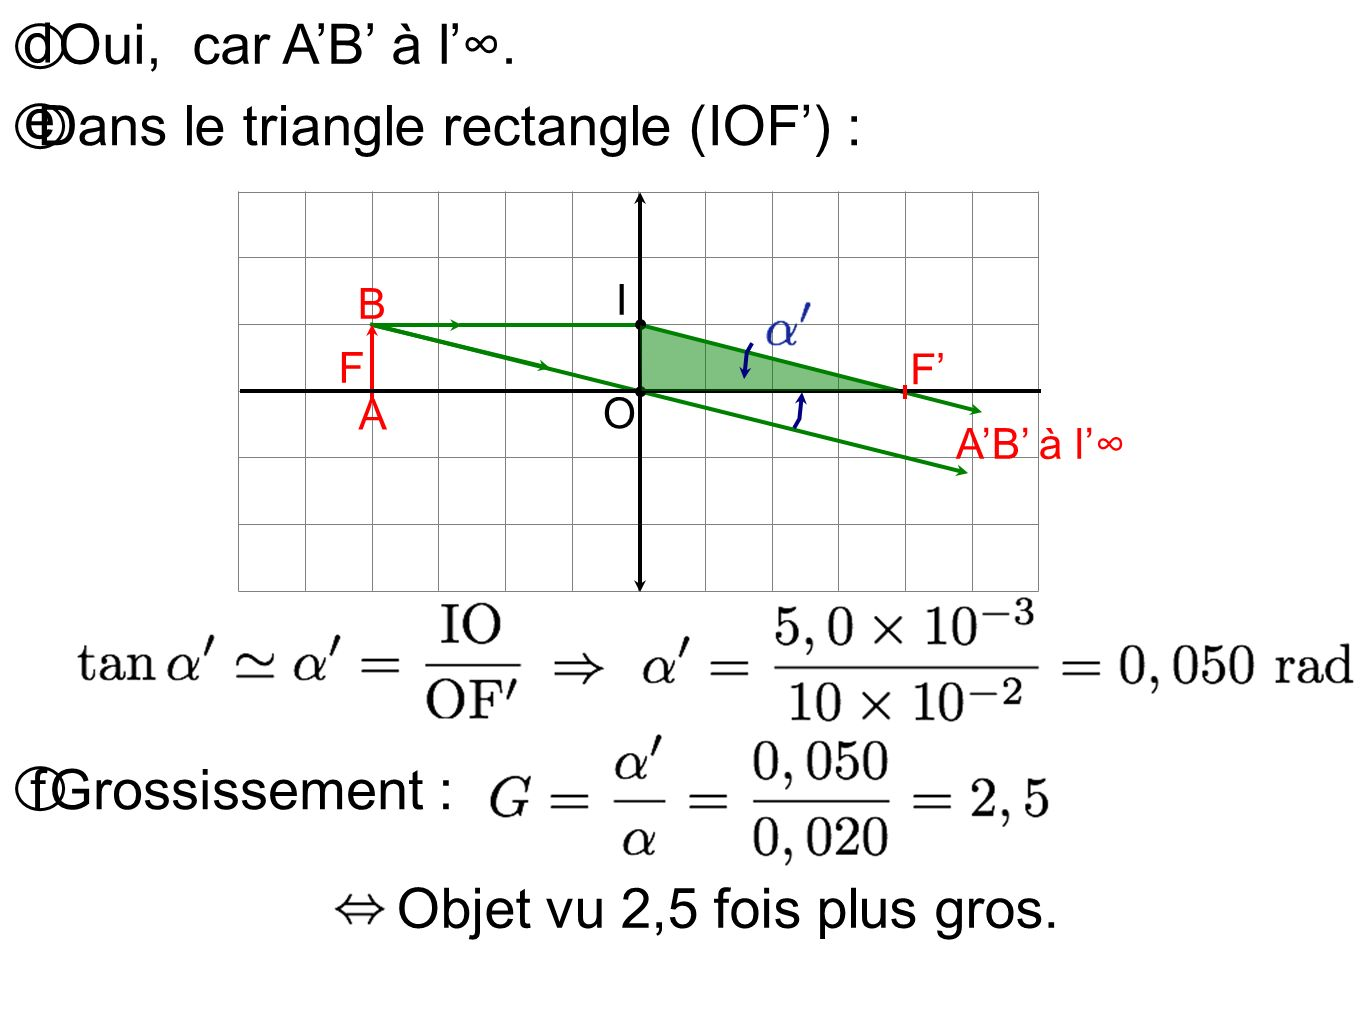 Dans le triangle rectangle (IOF') :